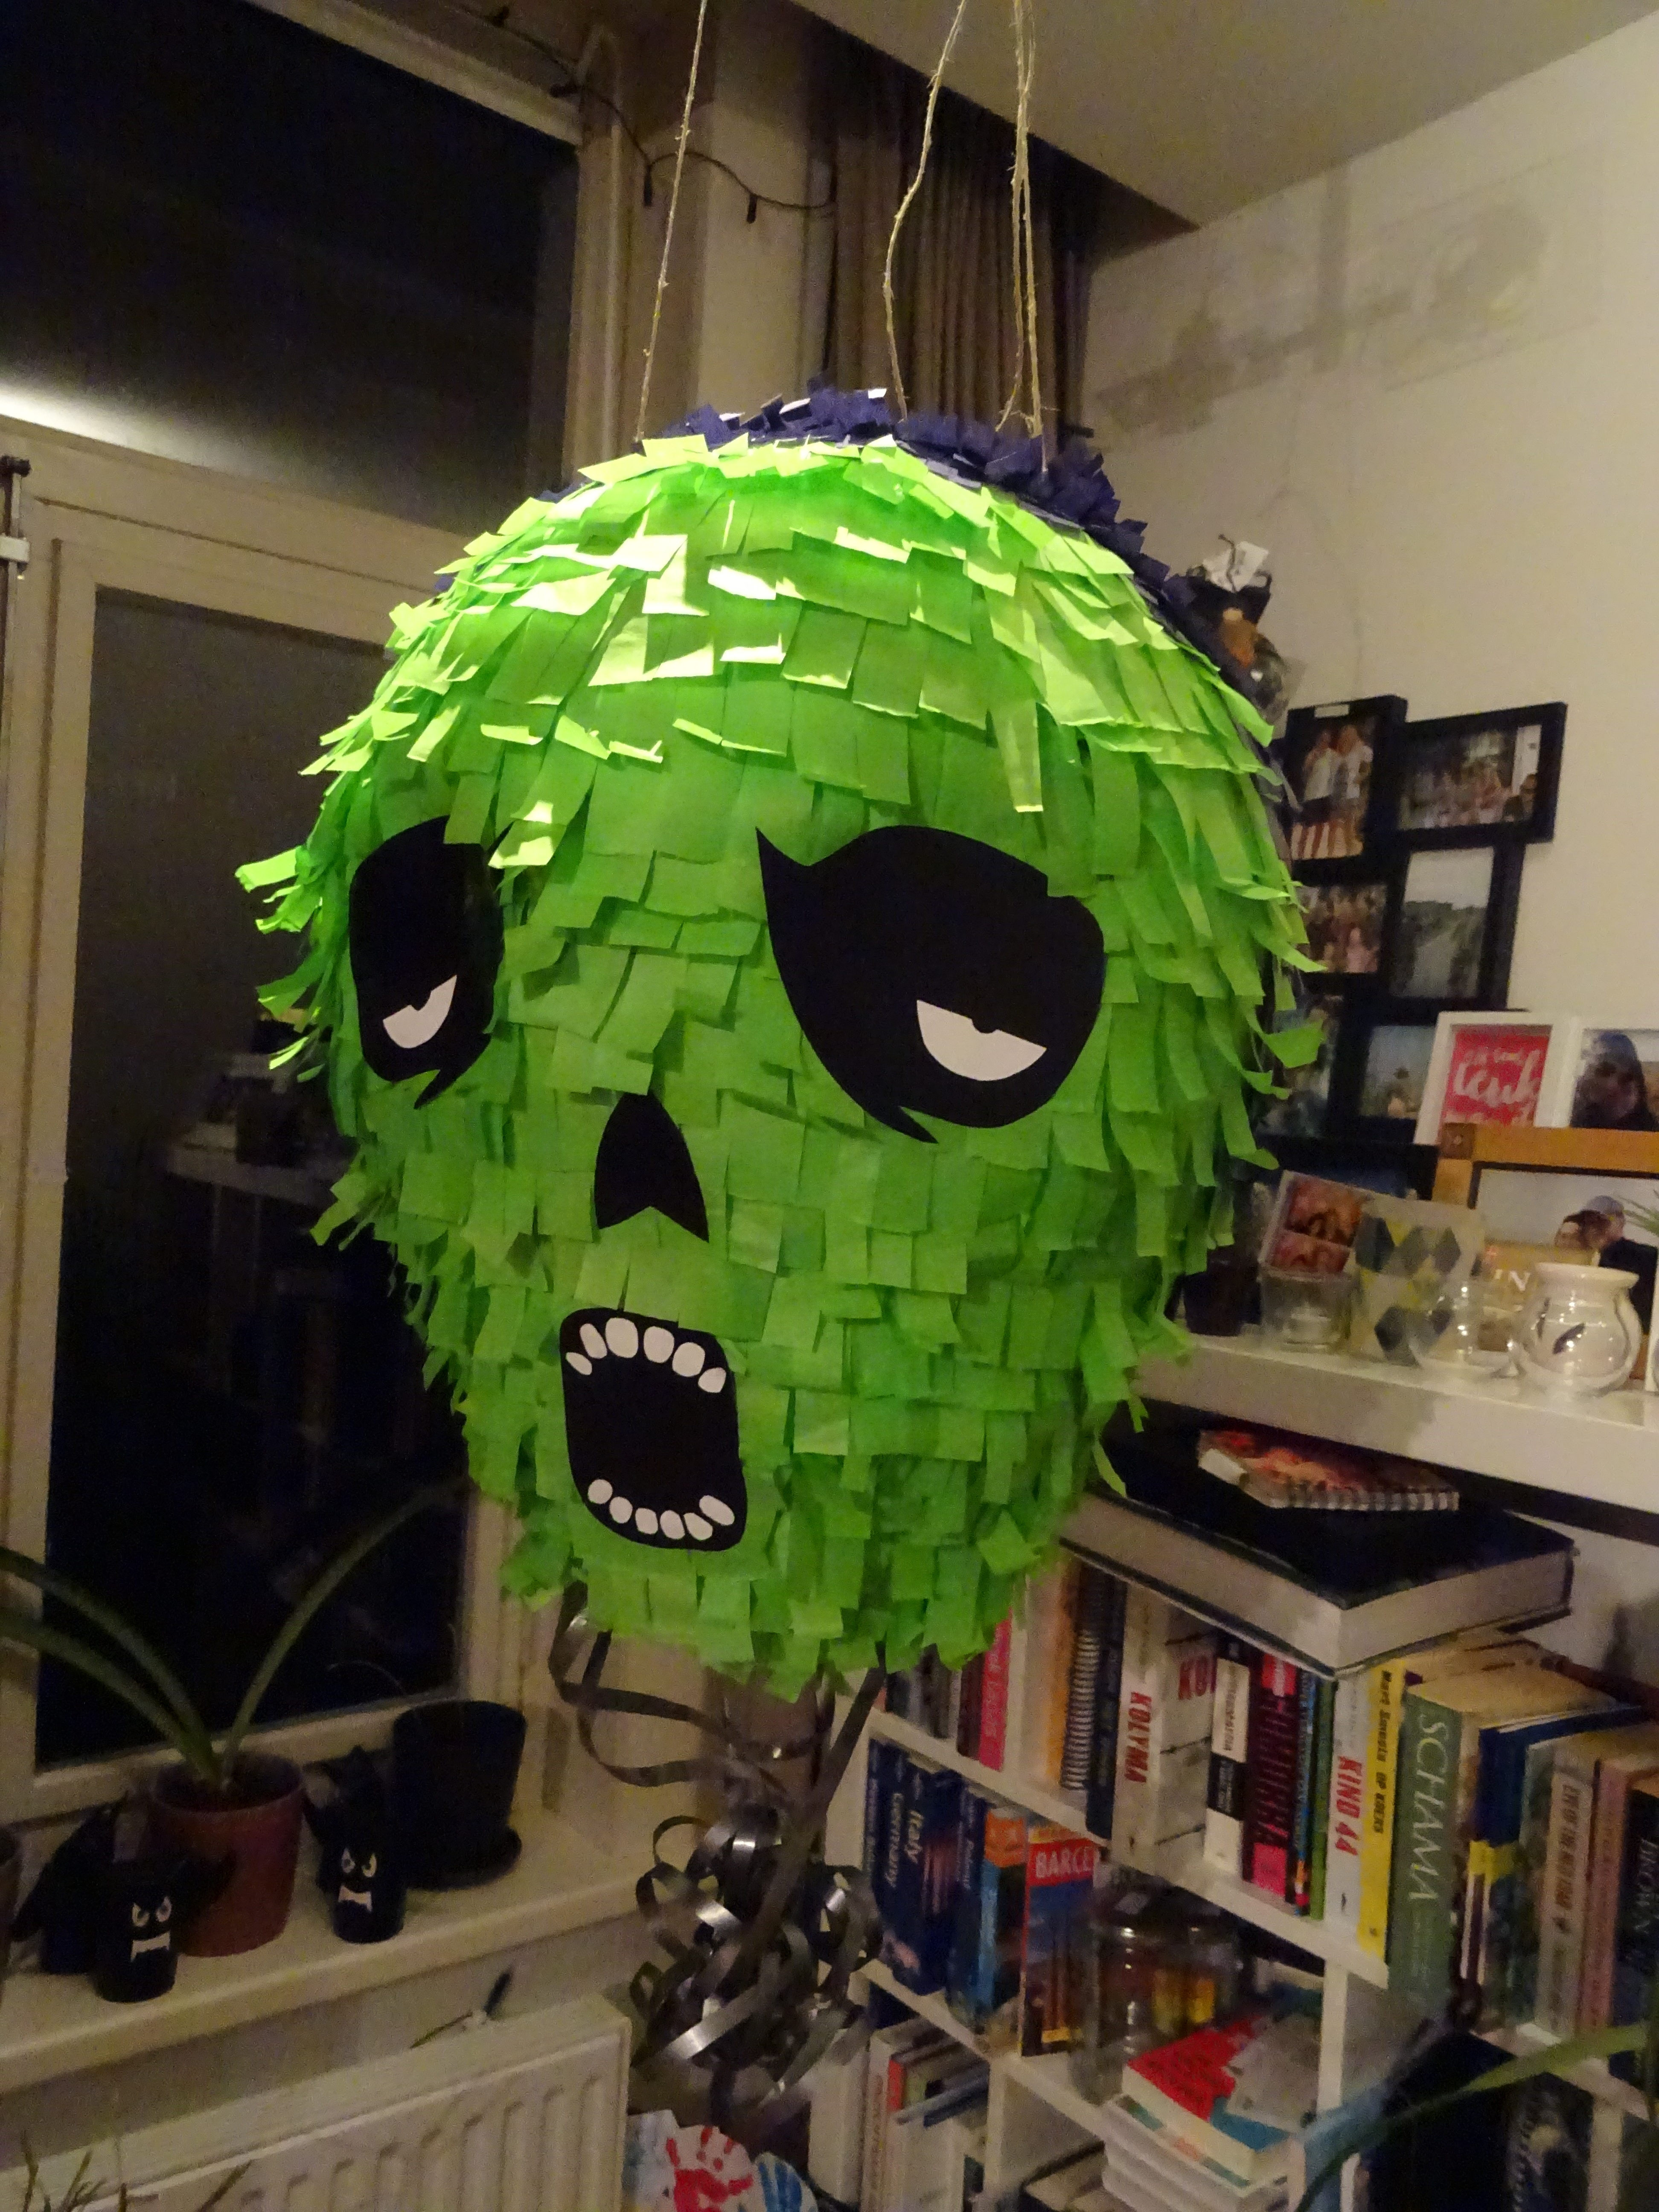 Pinata for a horror themed party